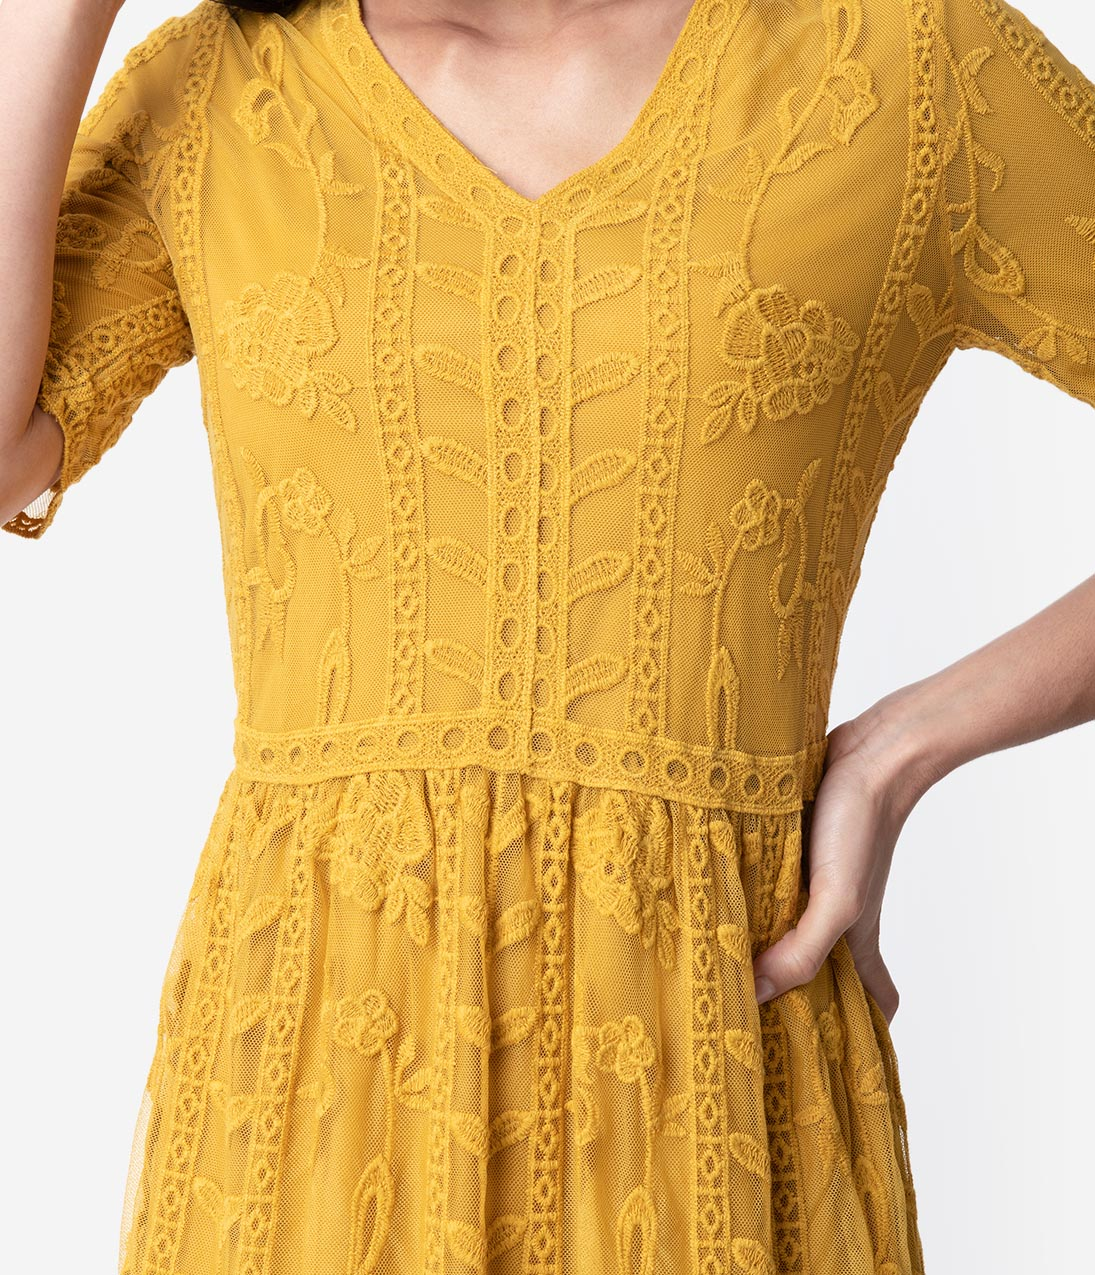 89c89abd574 1940s Style Mustard Yellow Lace Short Sleeved Long Dress